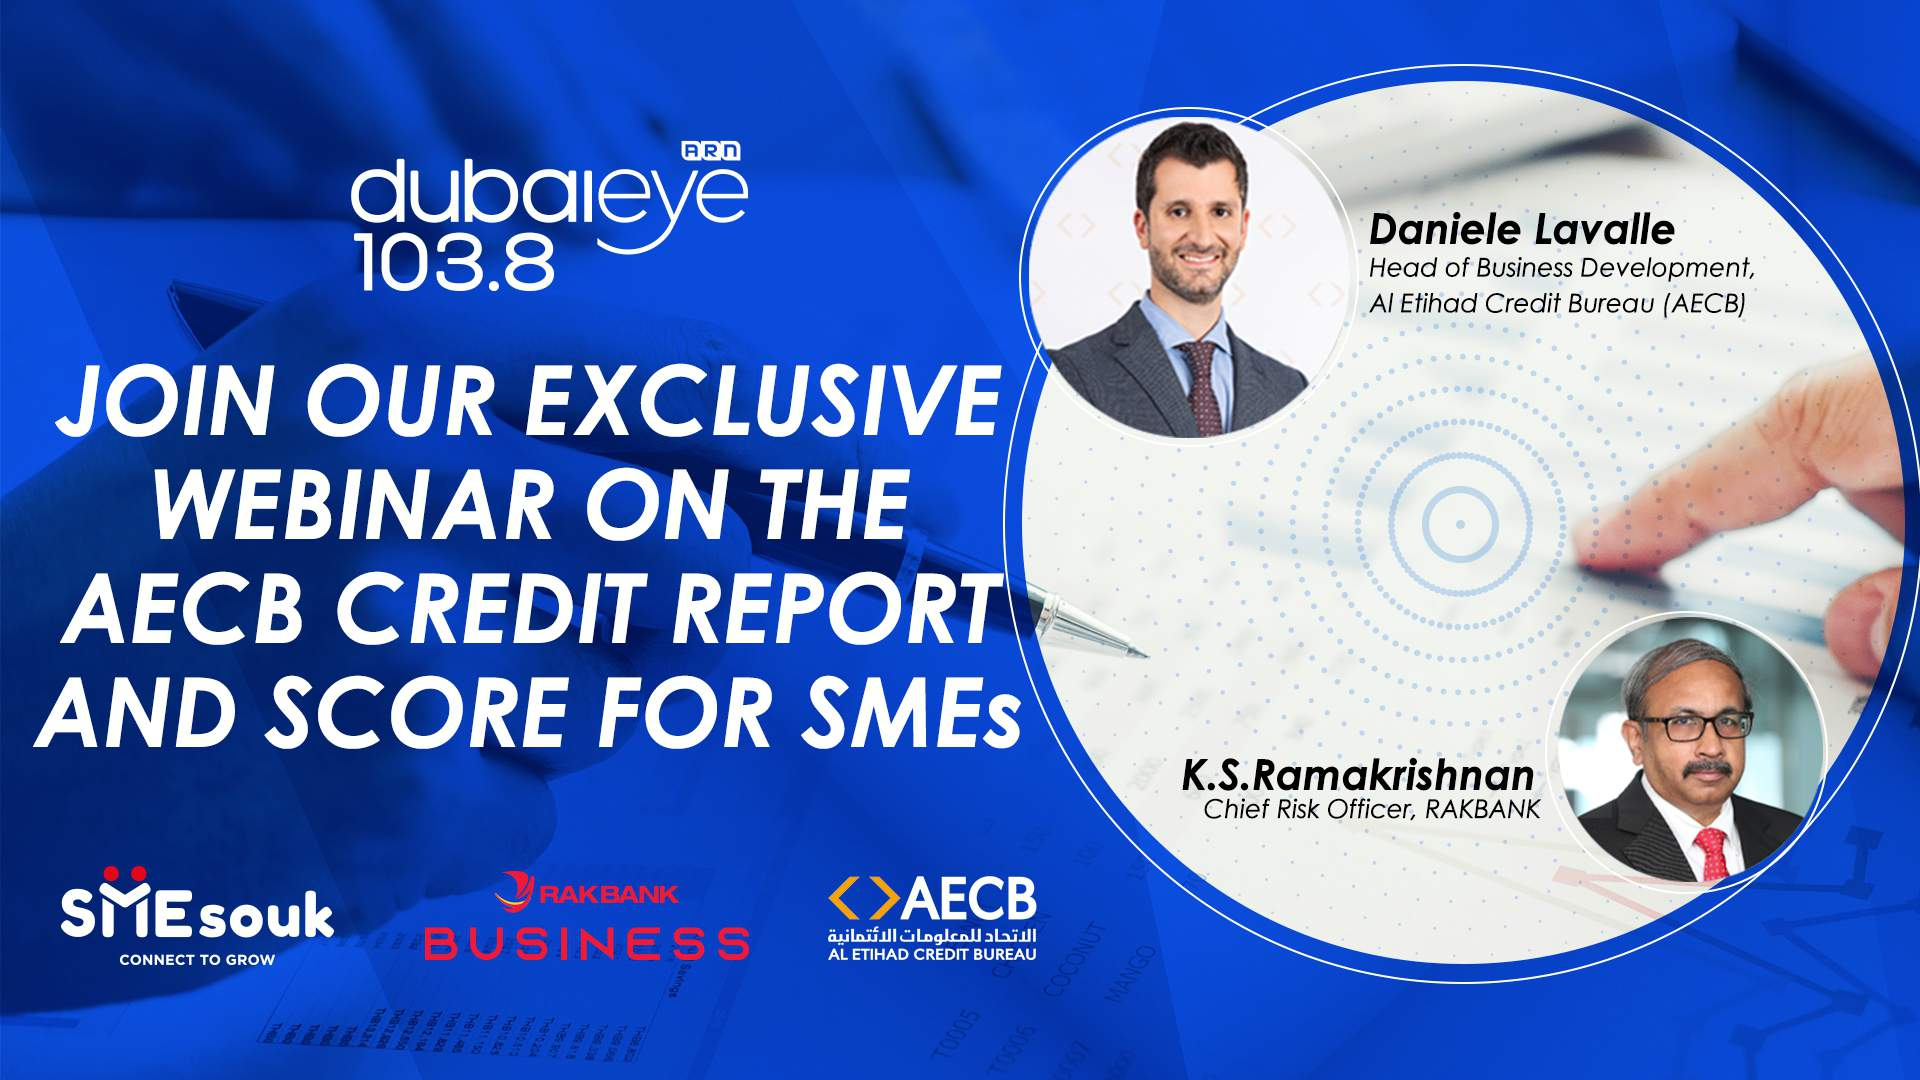 JOIN OUR EXCLUSIVE WEBINAR ON THE AECB CREDIT REPORT AND SCORE FOR SMEs